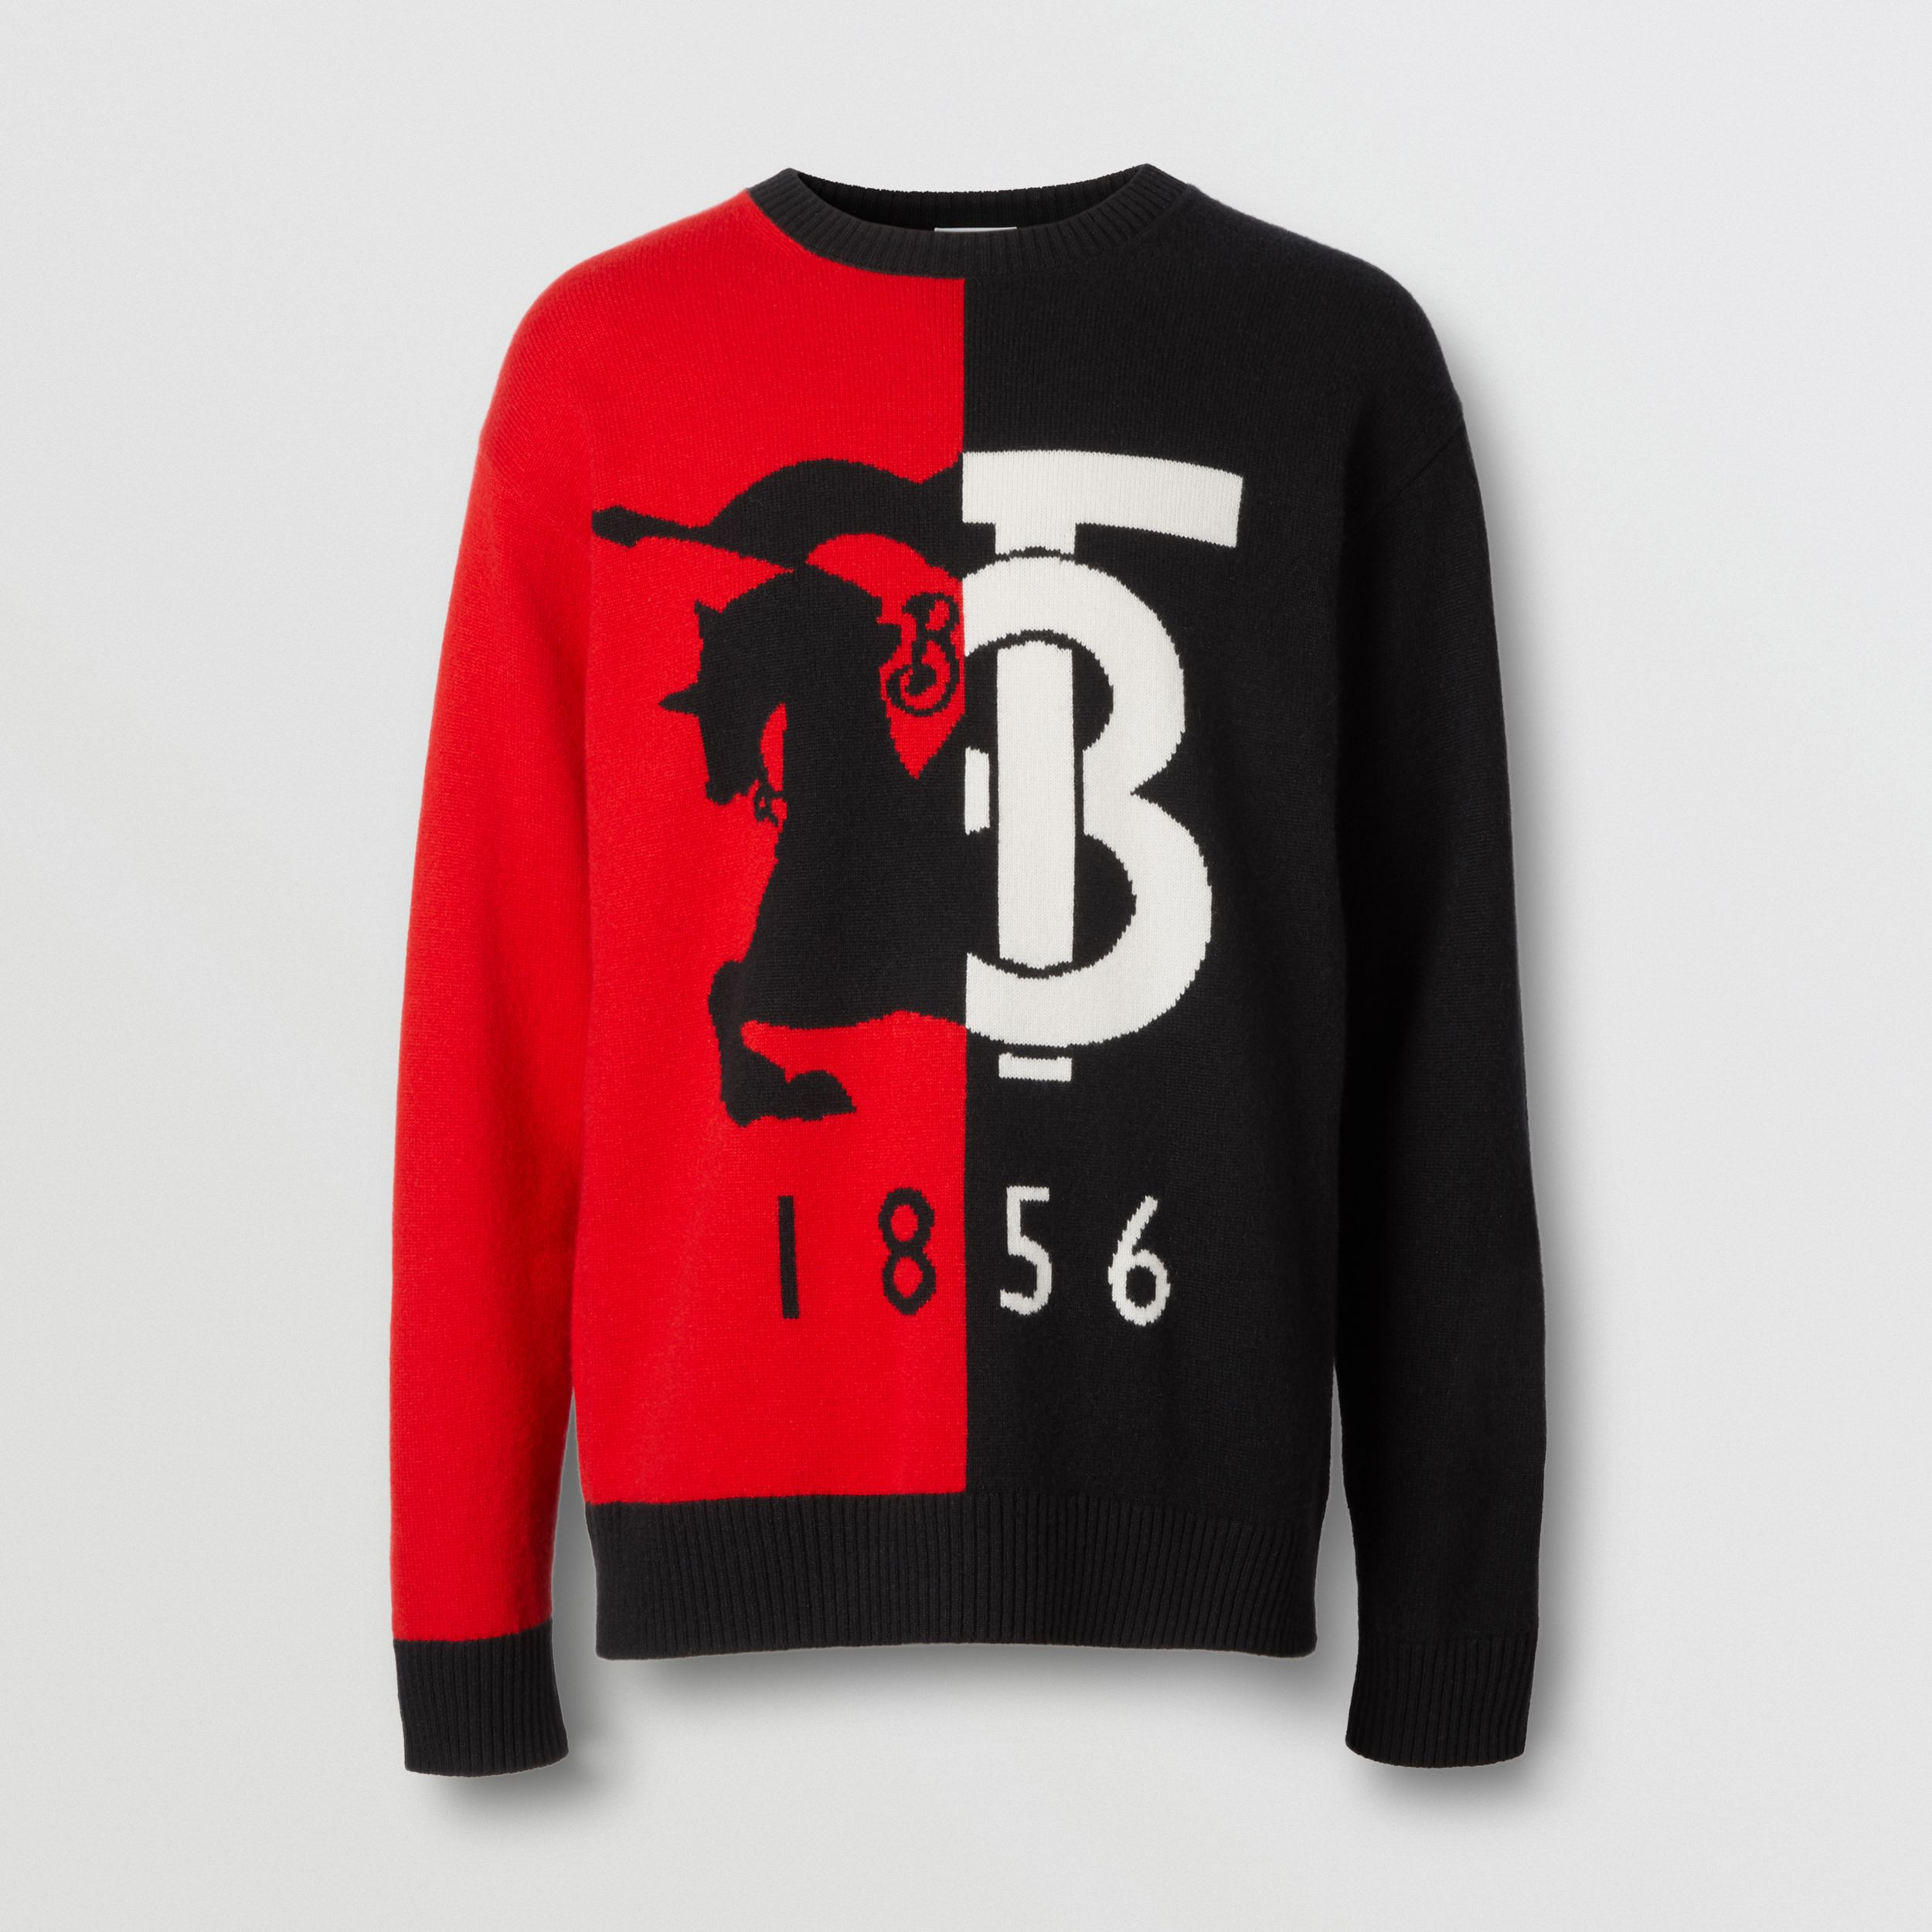 Contrast Logo Graphic Intarsia Cashmere Sweater in Black - Men | Burberry - 4